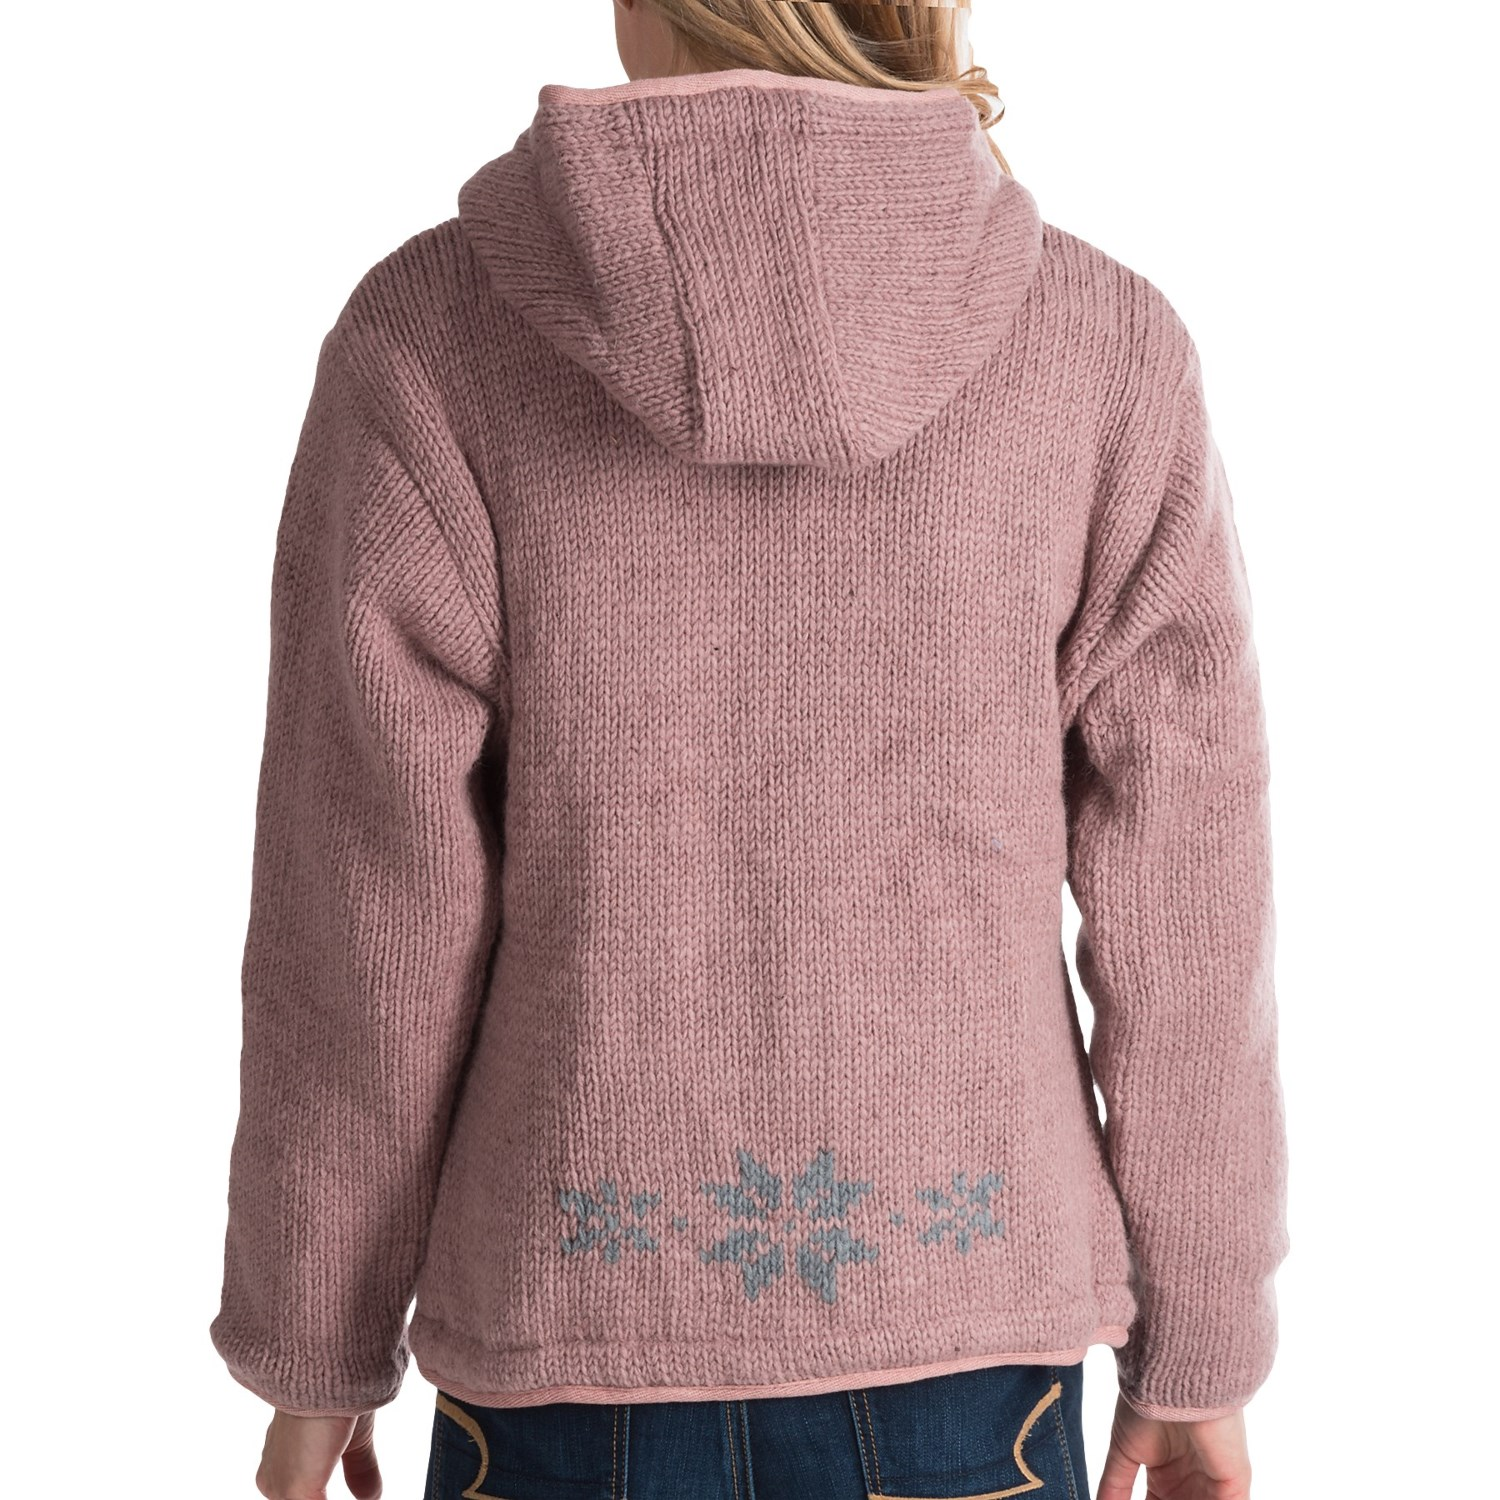 How To Design Your Own Hoodie At Home Laundromat Snowflake Windbreaker Wool Hoodie For Women